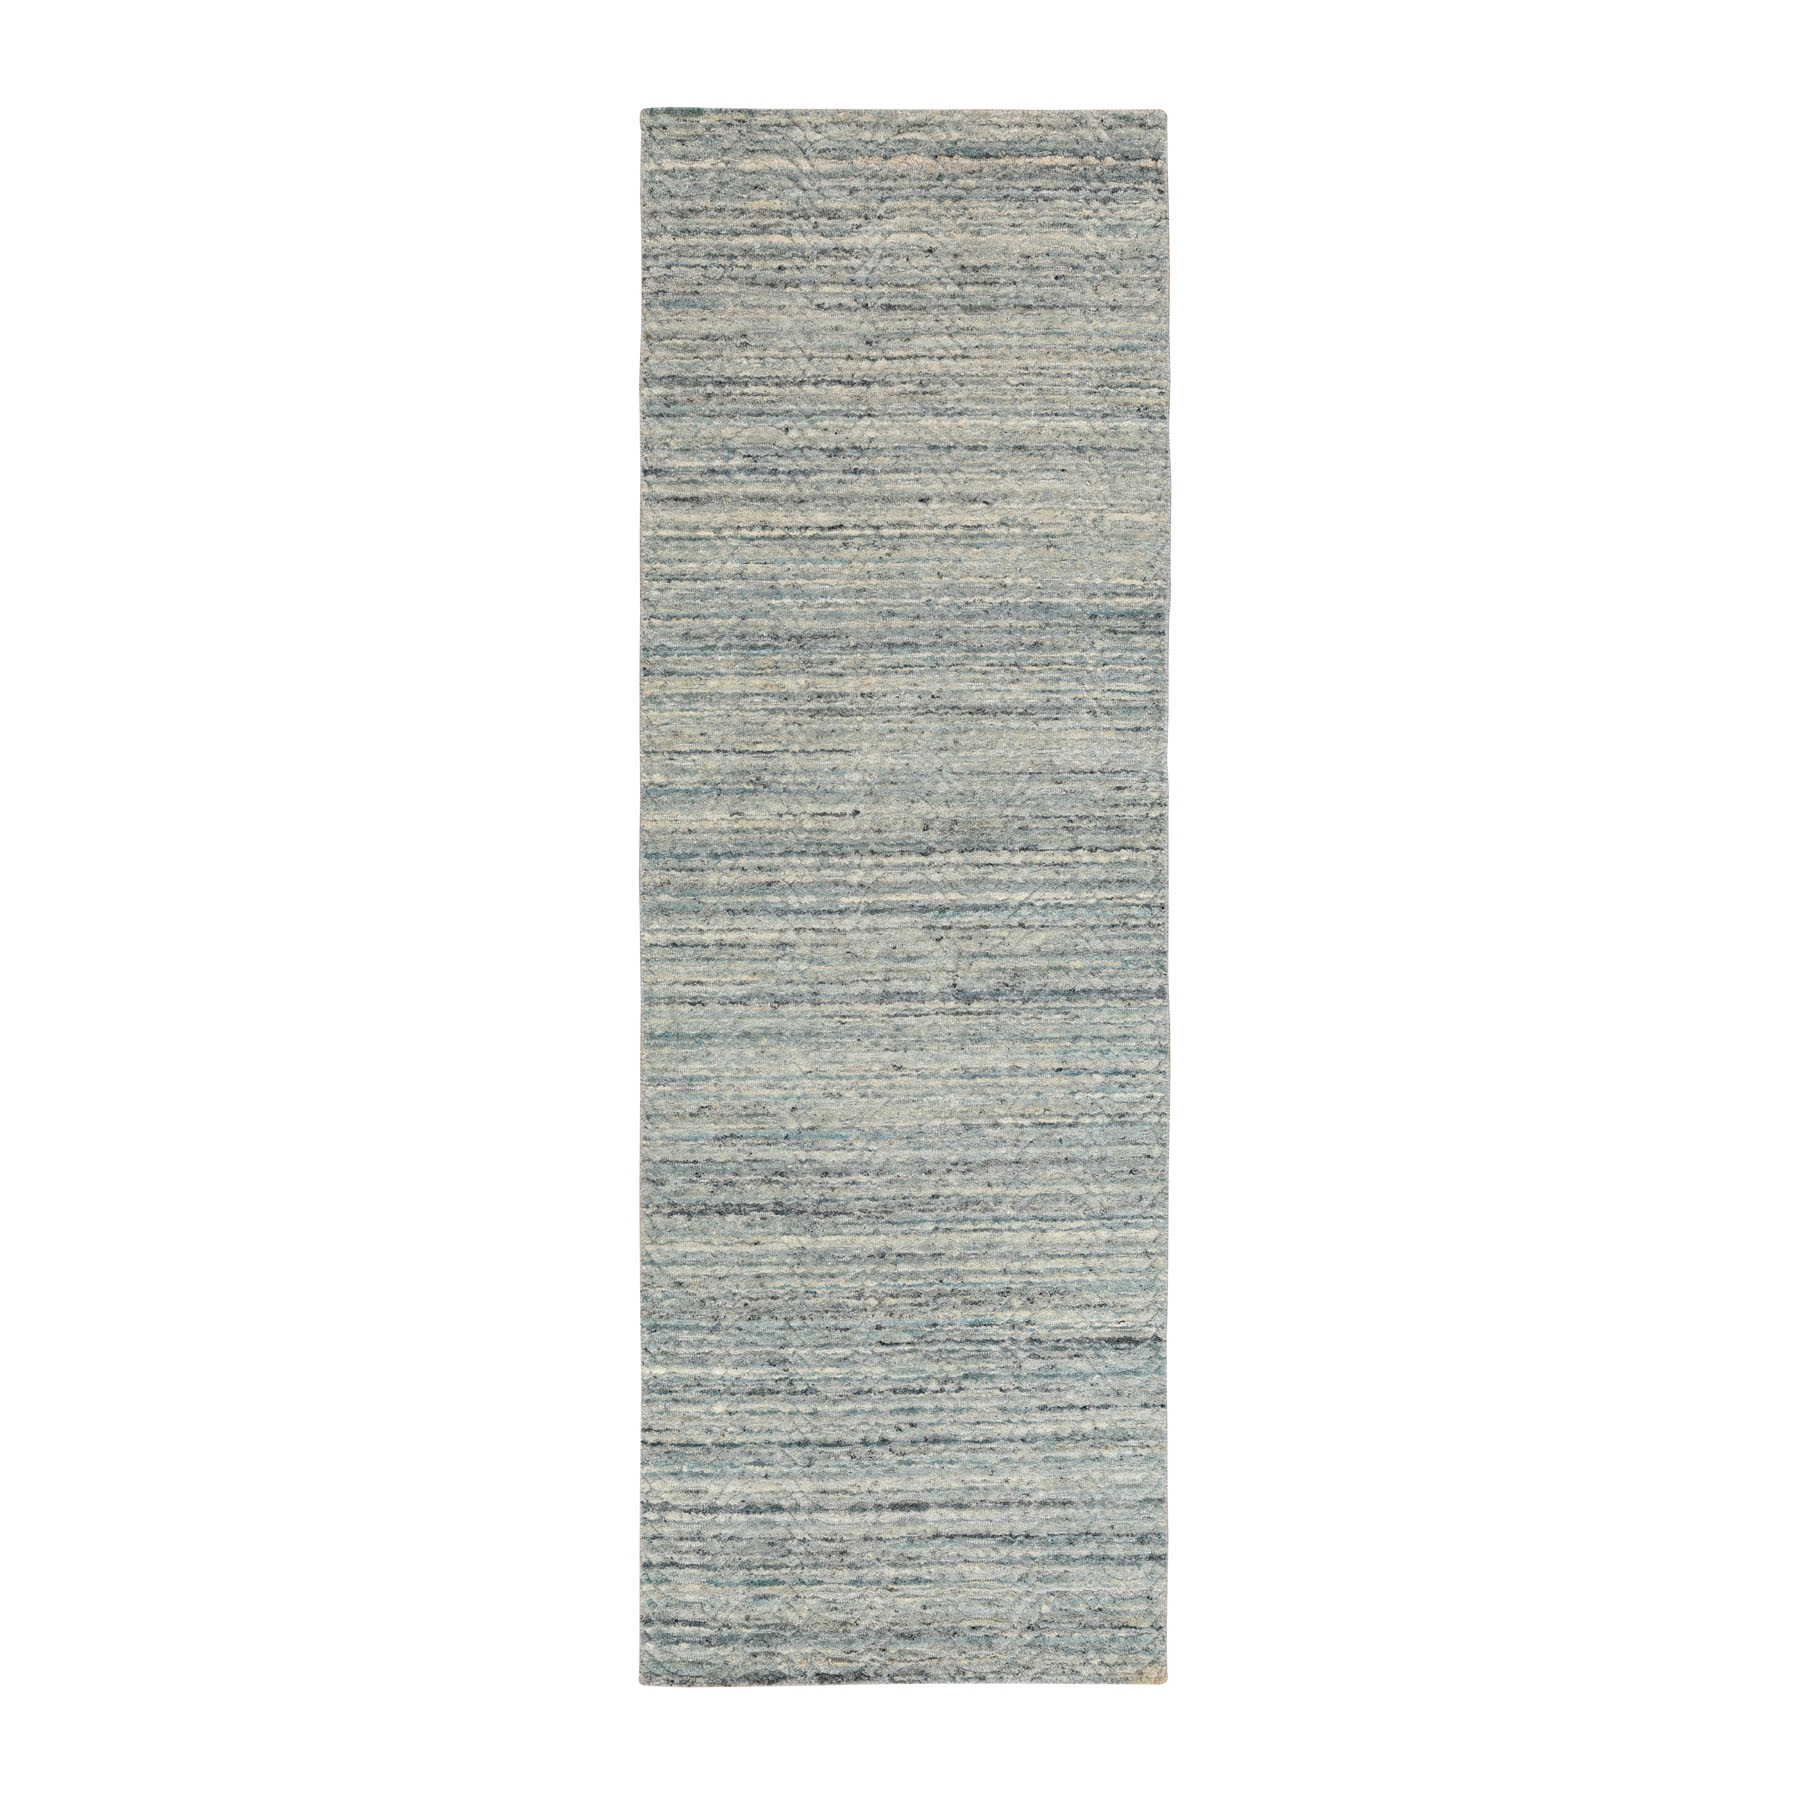 Mid Century Modern Collection Hand Loomed Green Rug No: 01116844